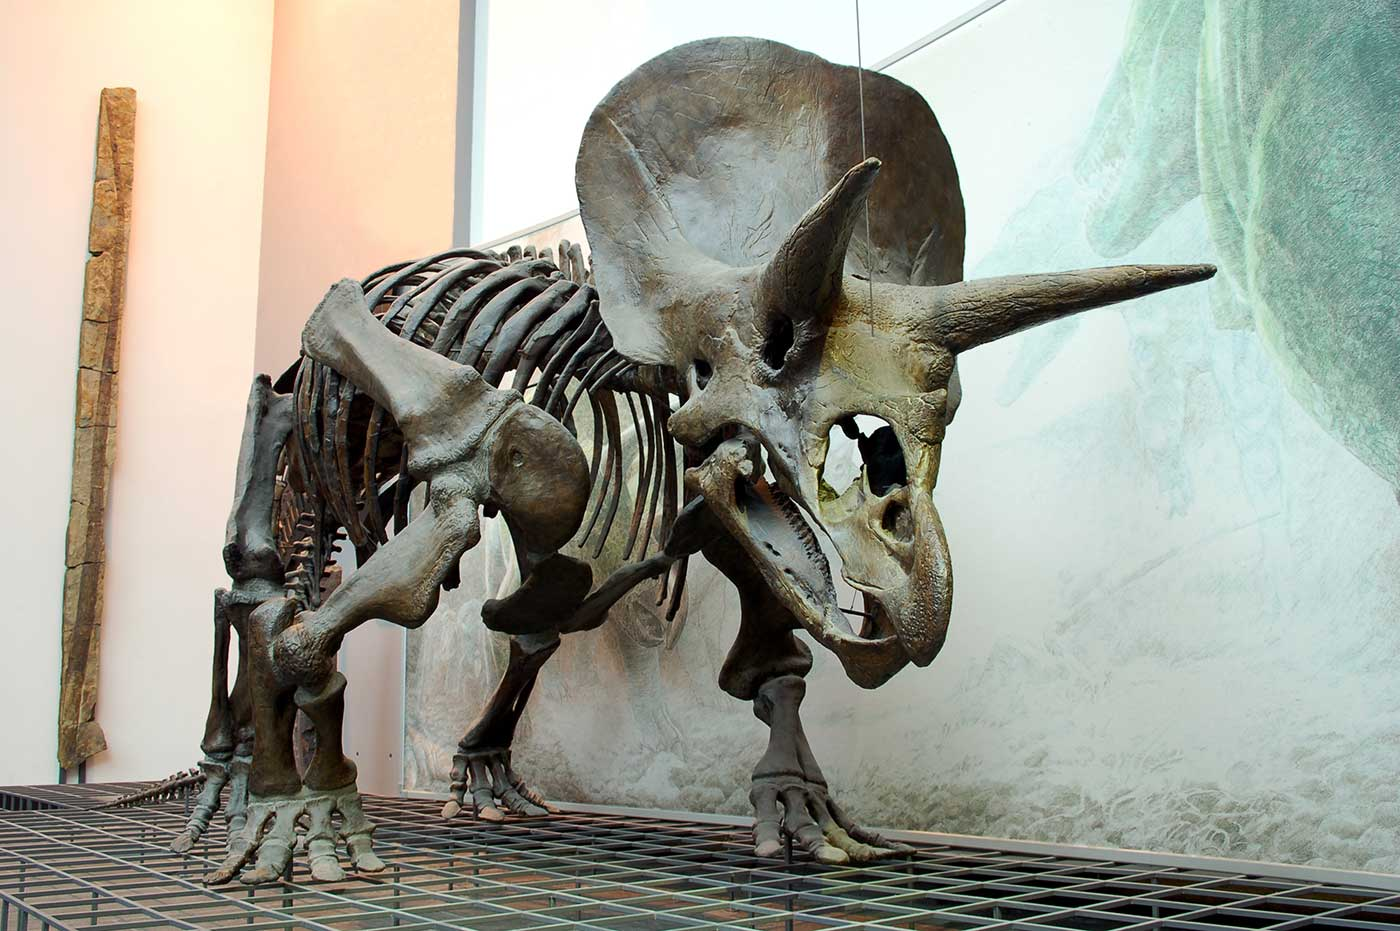 Reconstruction of a dinosaur skeleton on show in a gallery space. Two large horns and one smaller horn protrude from the dinosaur's head. - click to view larger image